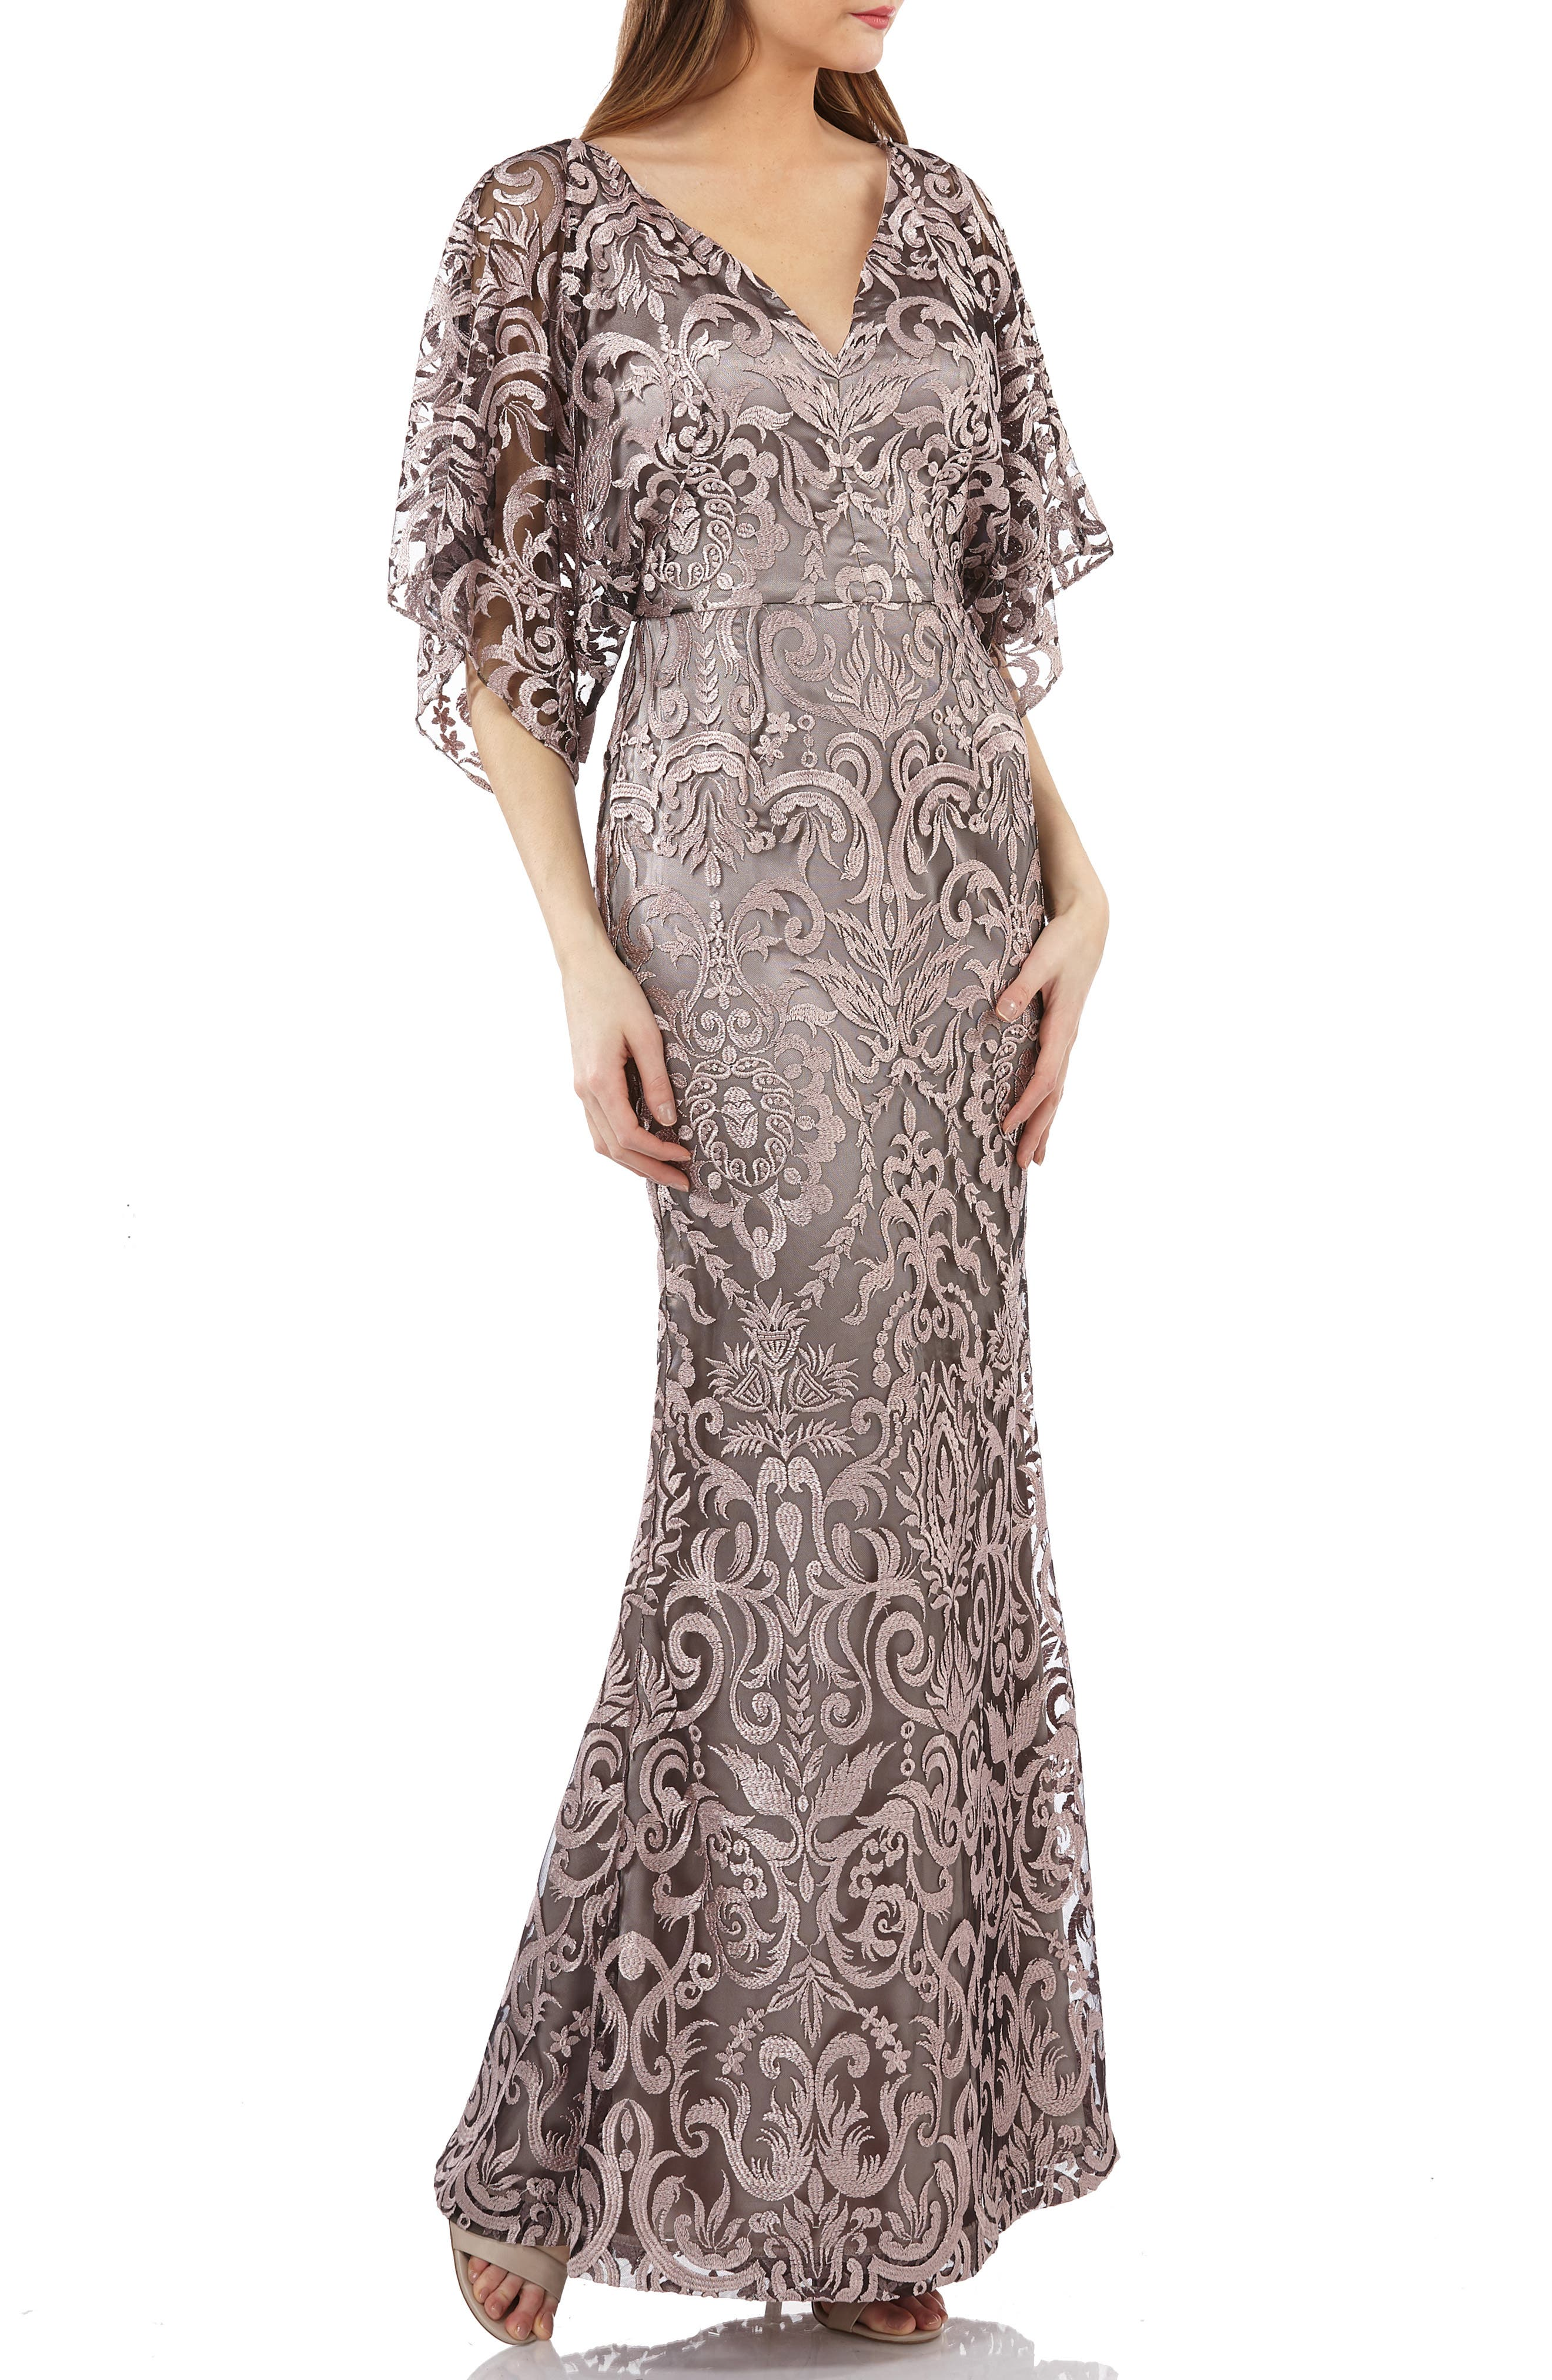 Js Collections Embroidered Lace Evening Dress, Pink